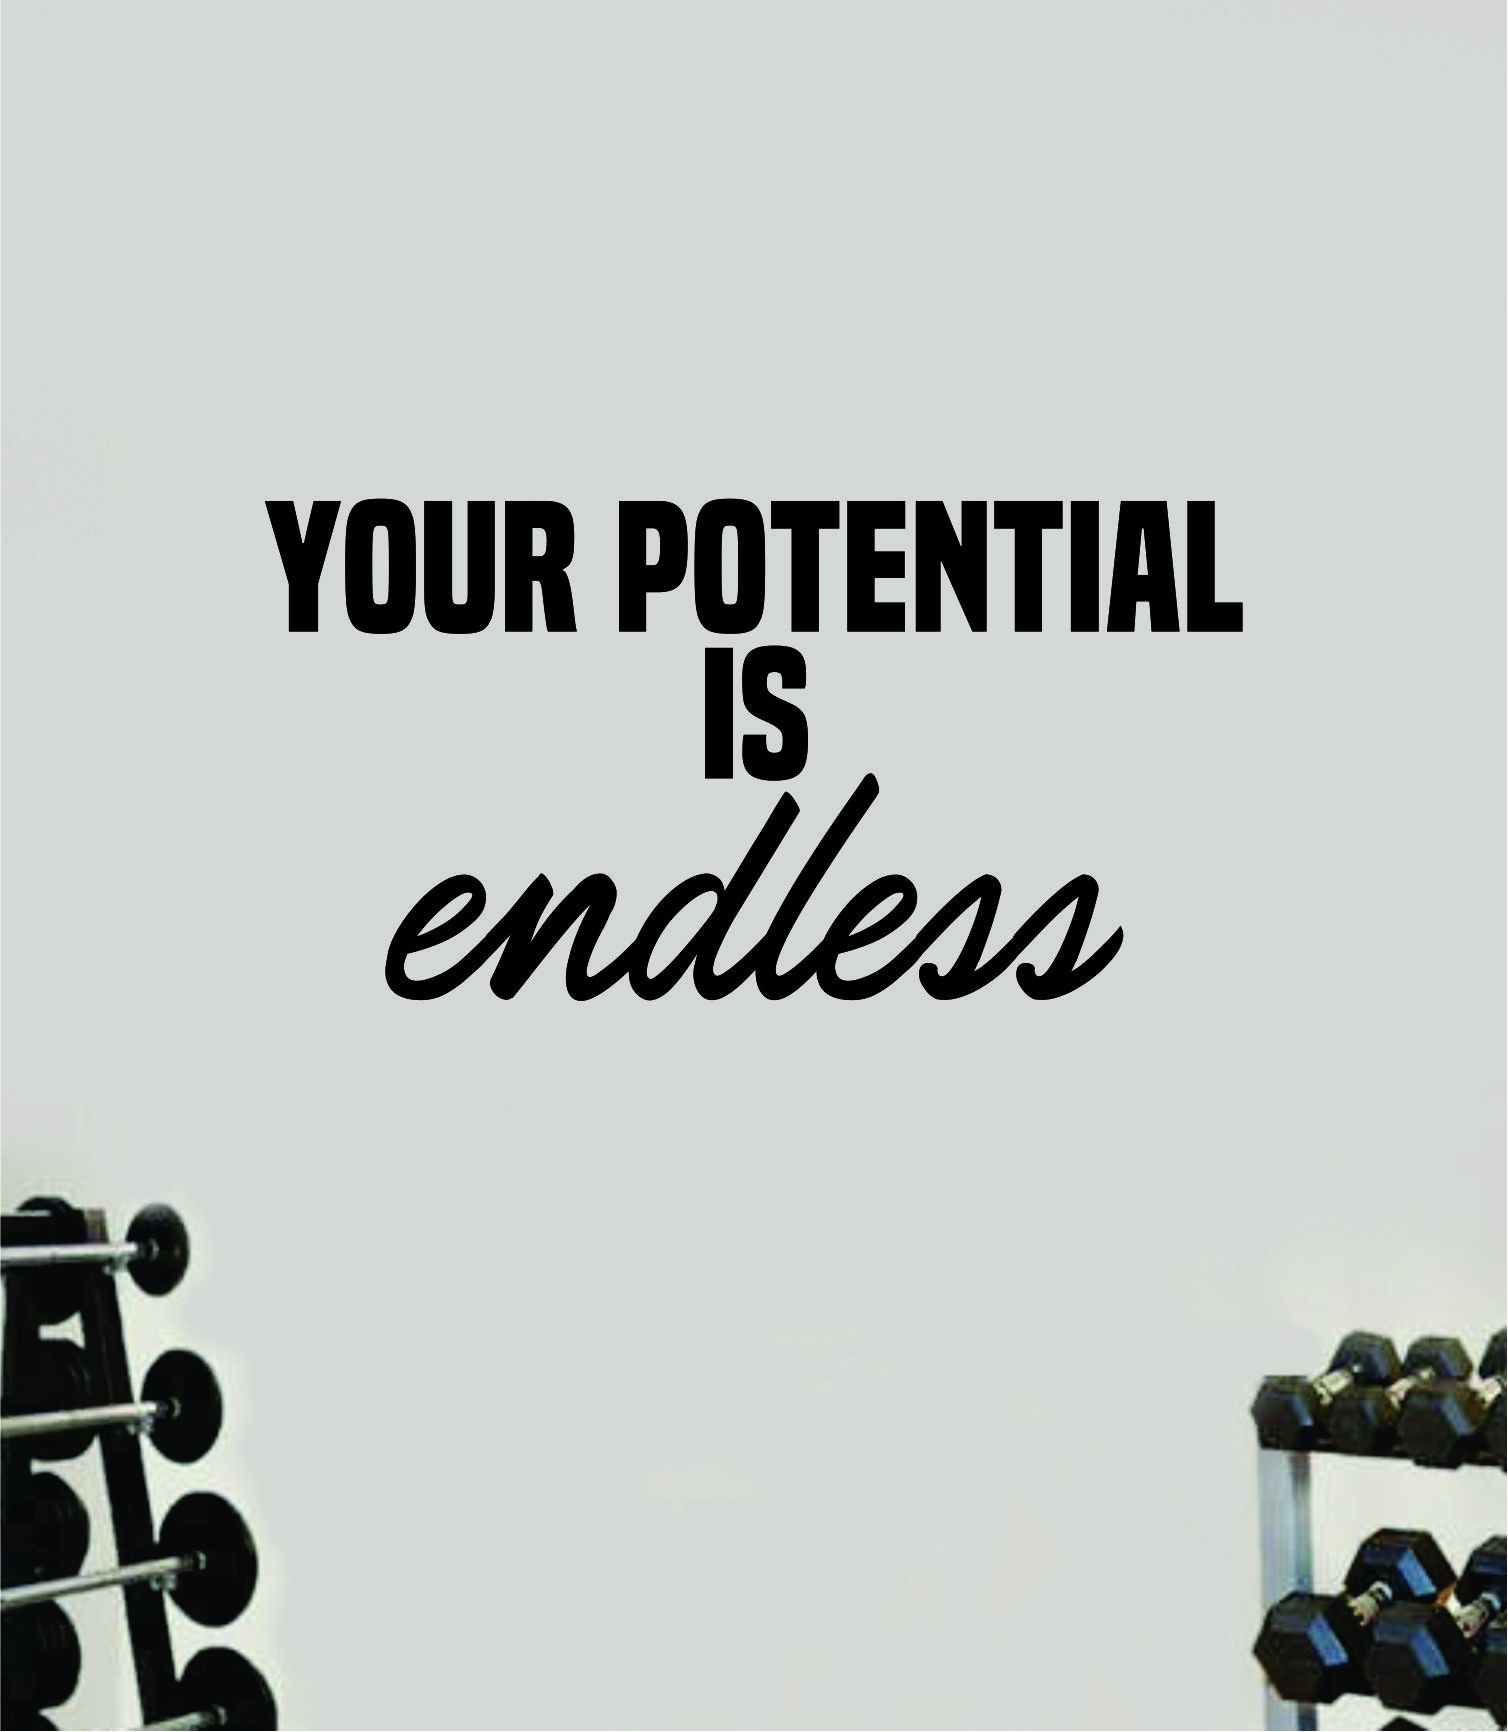 Your Potential is Endless V2 Gym Fitness Wall Decal Home Decor Bedroom Room Vinyl Sticker Teen Art Quote Beast Lift Train Inspirational Motivational Health Girls School - teal